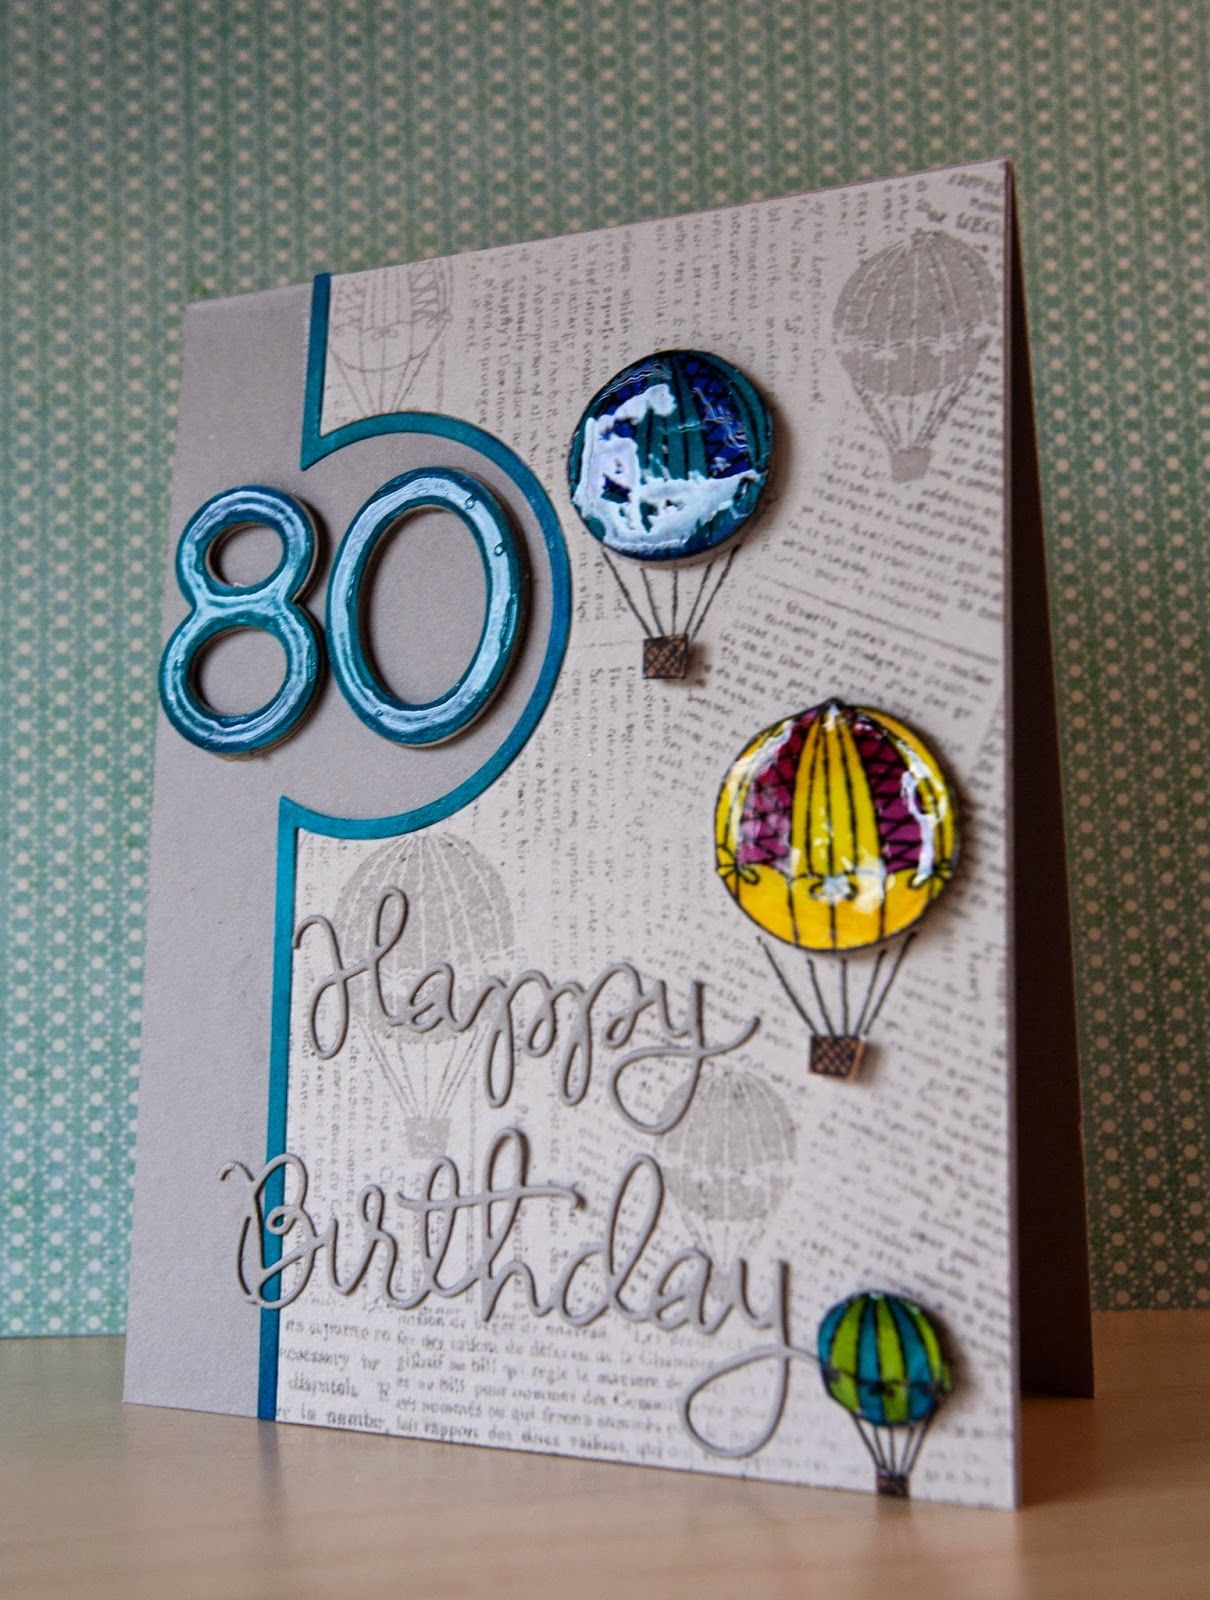 My Life In Paper 80th Birthday 80th Birthday Cards Birthday Cards Birthday Cards For Men